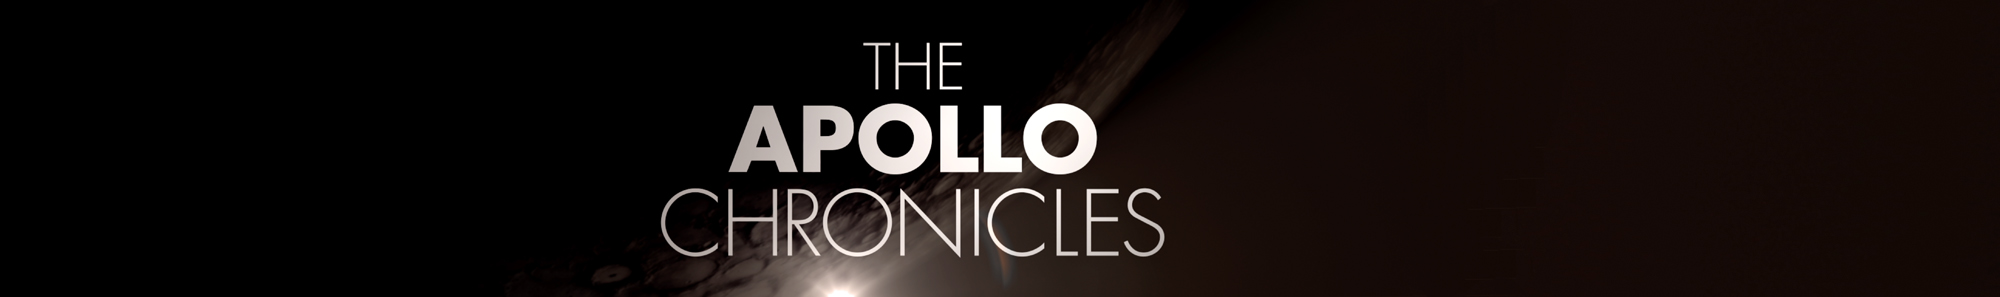 The Apollo Chronicles - Steve Rotfeld Productions